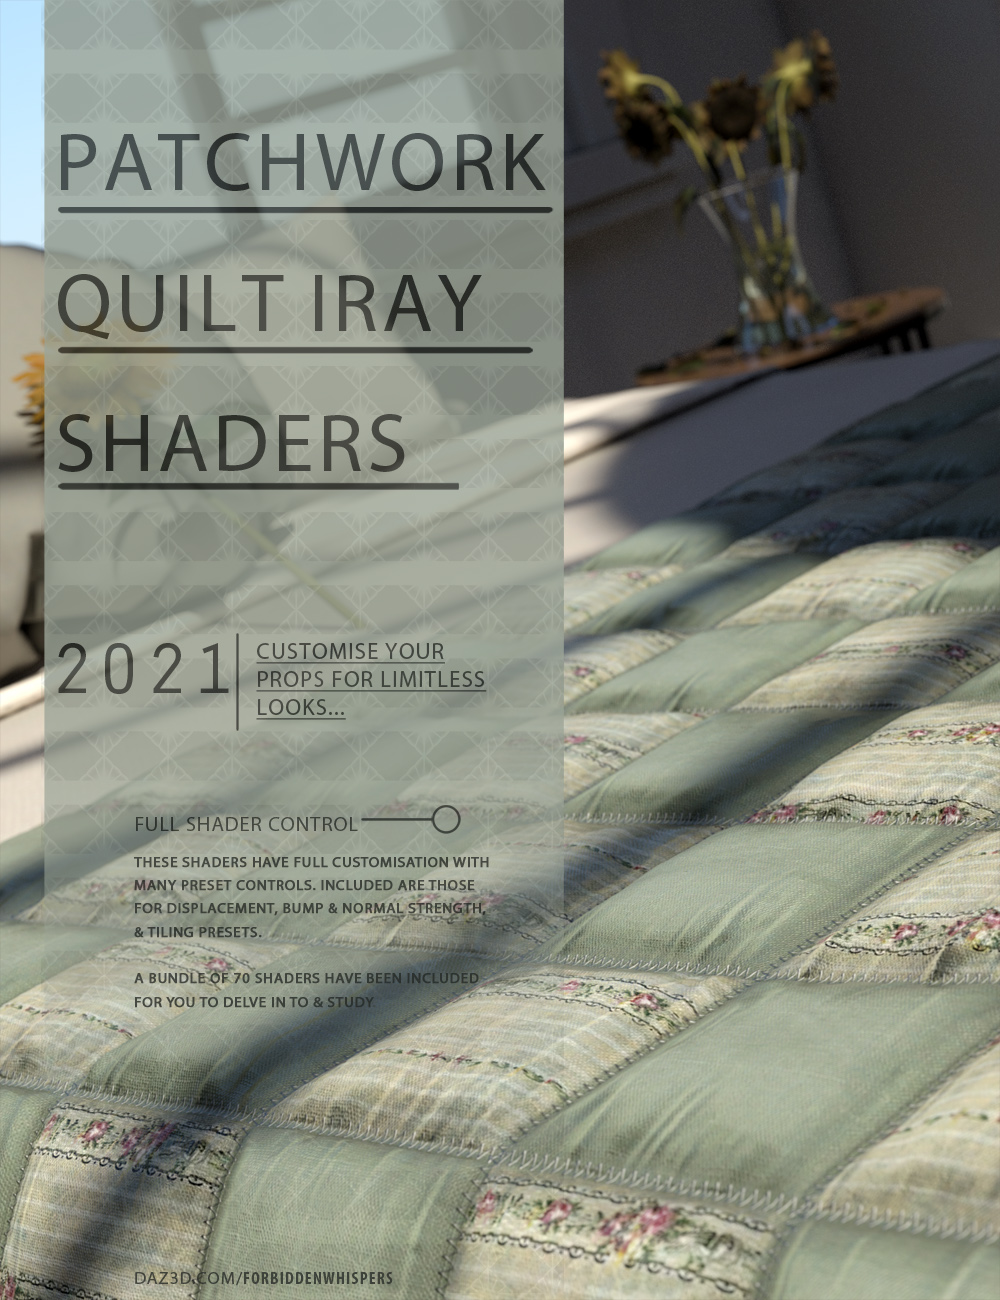 Patchwork Quilt Iray Shaders by: ForbiddenWhispers, 3D Models by Daz 3D